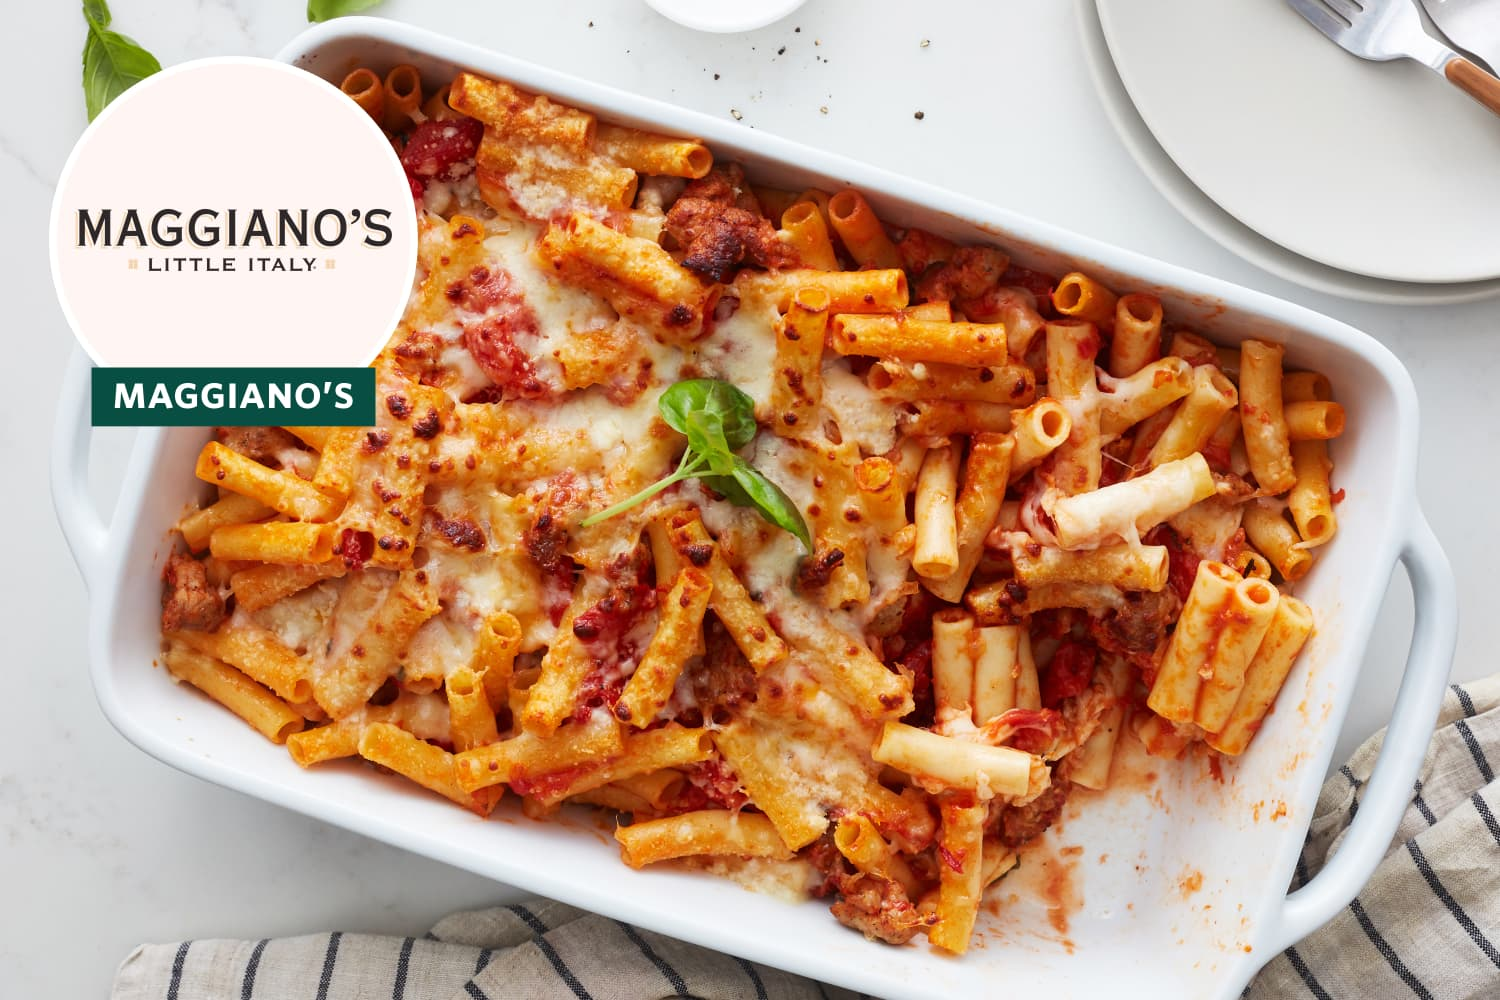 I Tried Maggianos' Famous Baked Ziti Recipe (It Takes Just 25 Minutes to Make)